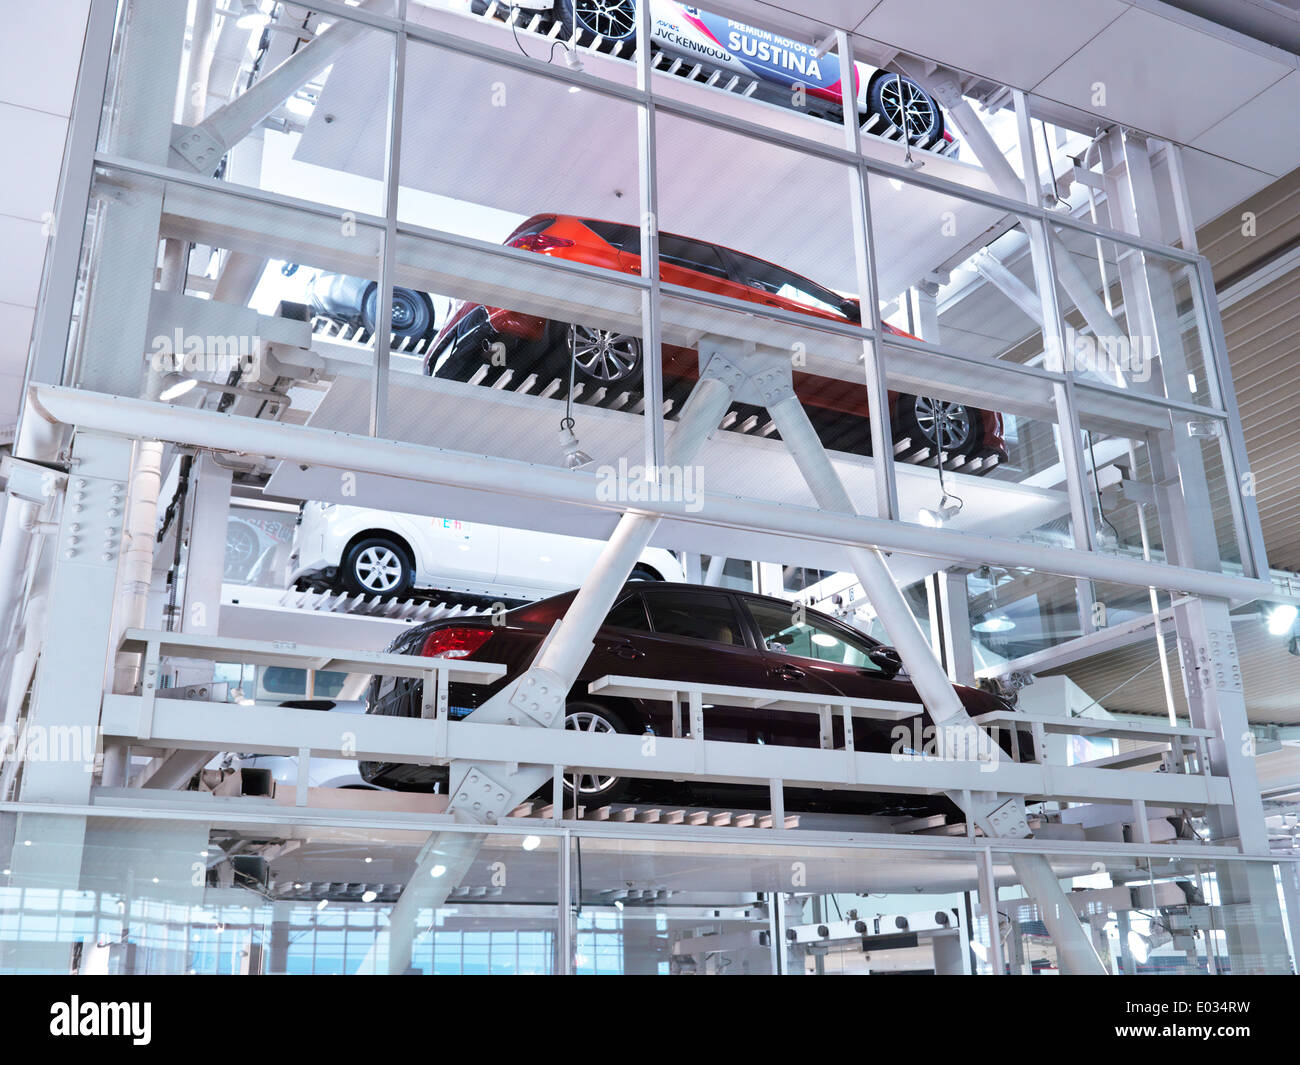 Several cars on elevator in a multi-level parking garage at Toyota Mega Web city showcase at Odaiba, Tokyo, Japan - Stock Image